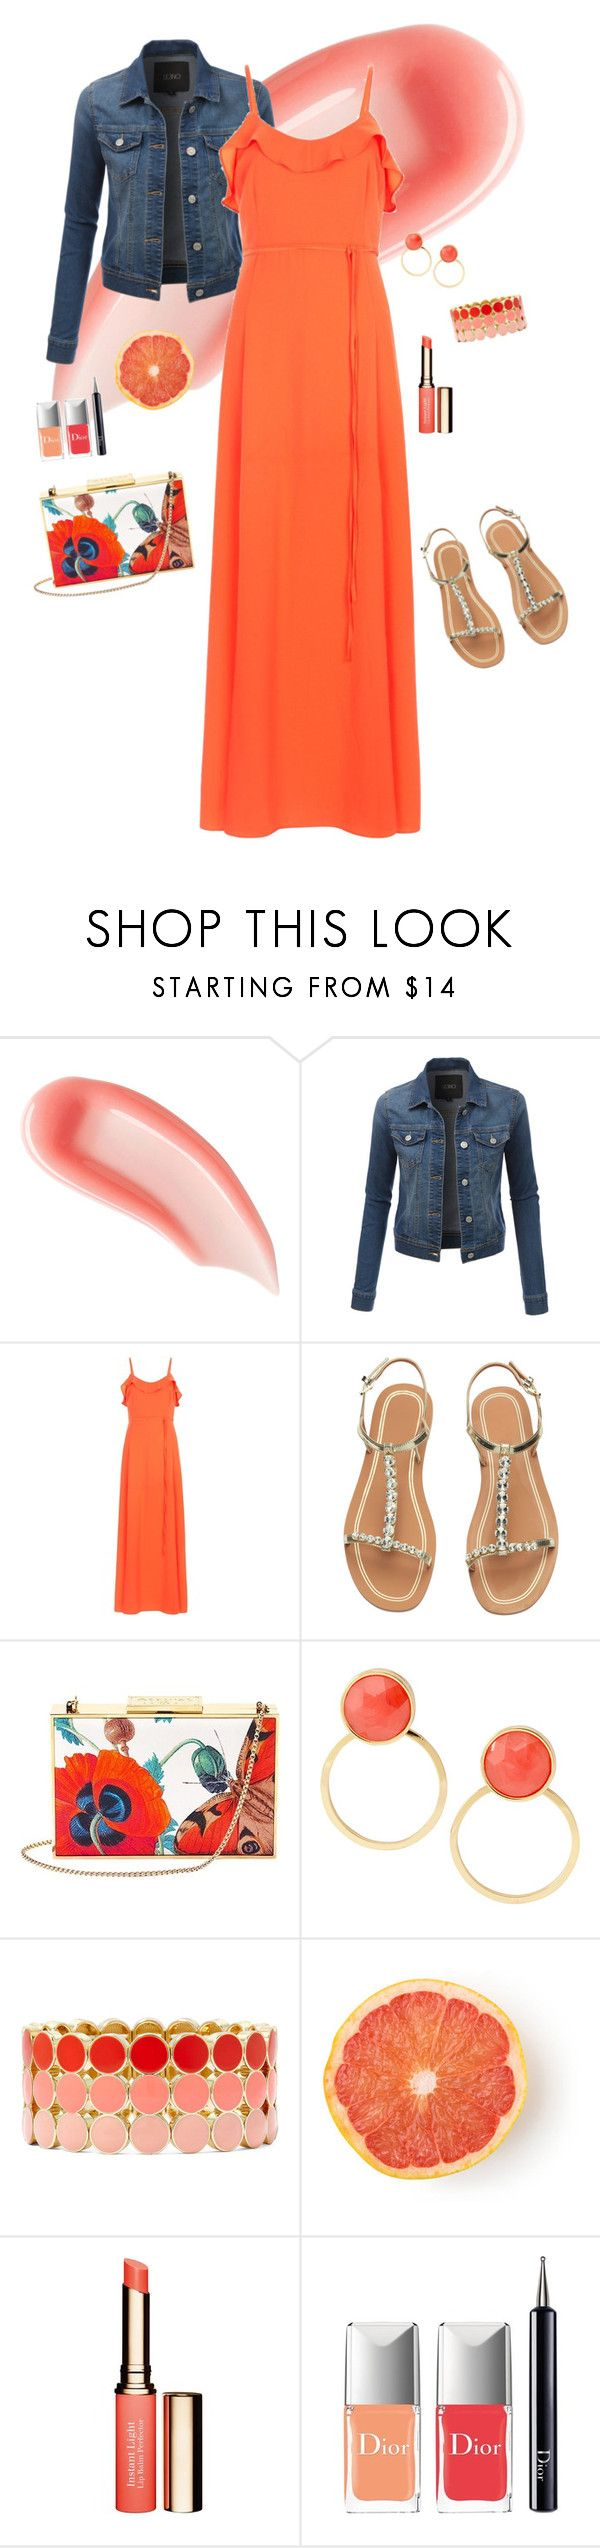 """""""Tangerine"""" by asilosky ❤ liked on Polyvore featuring Ilia, LE3NO, New Look, Aspinal of London, Kate Spade, Liz Claiborne, Clarins and Christian Dior"""